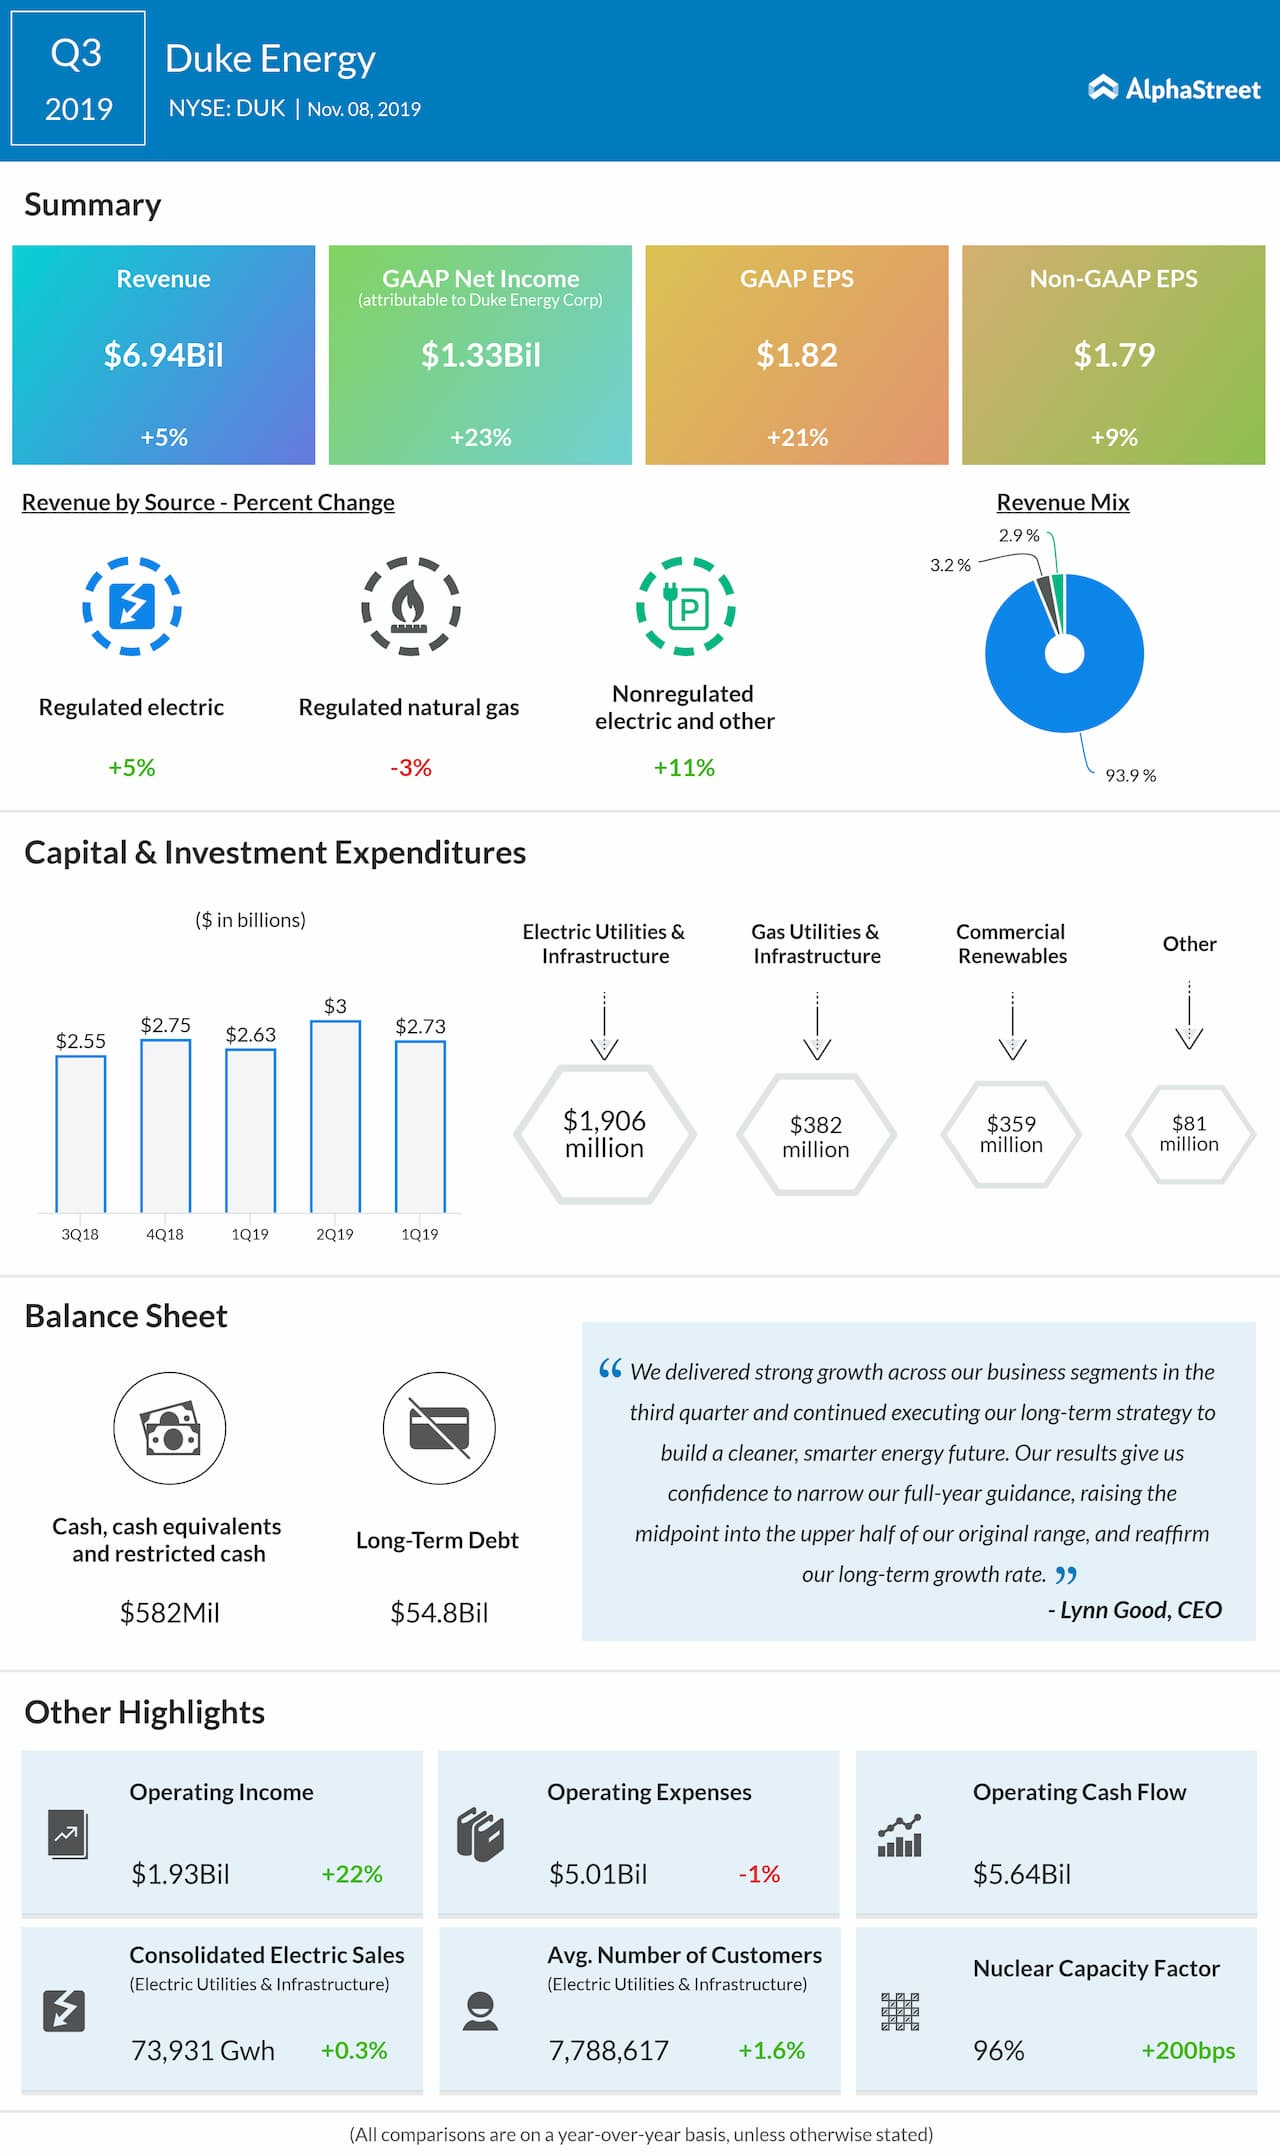 Duke Energy (DUK) Q3 2019 Earnings Review